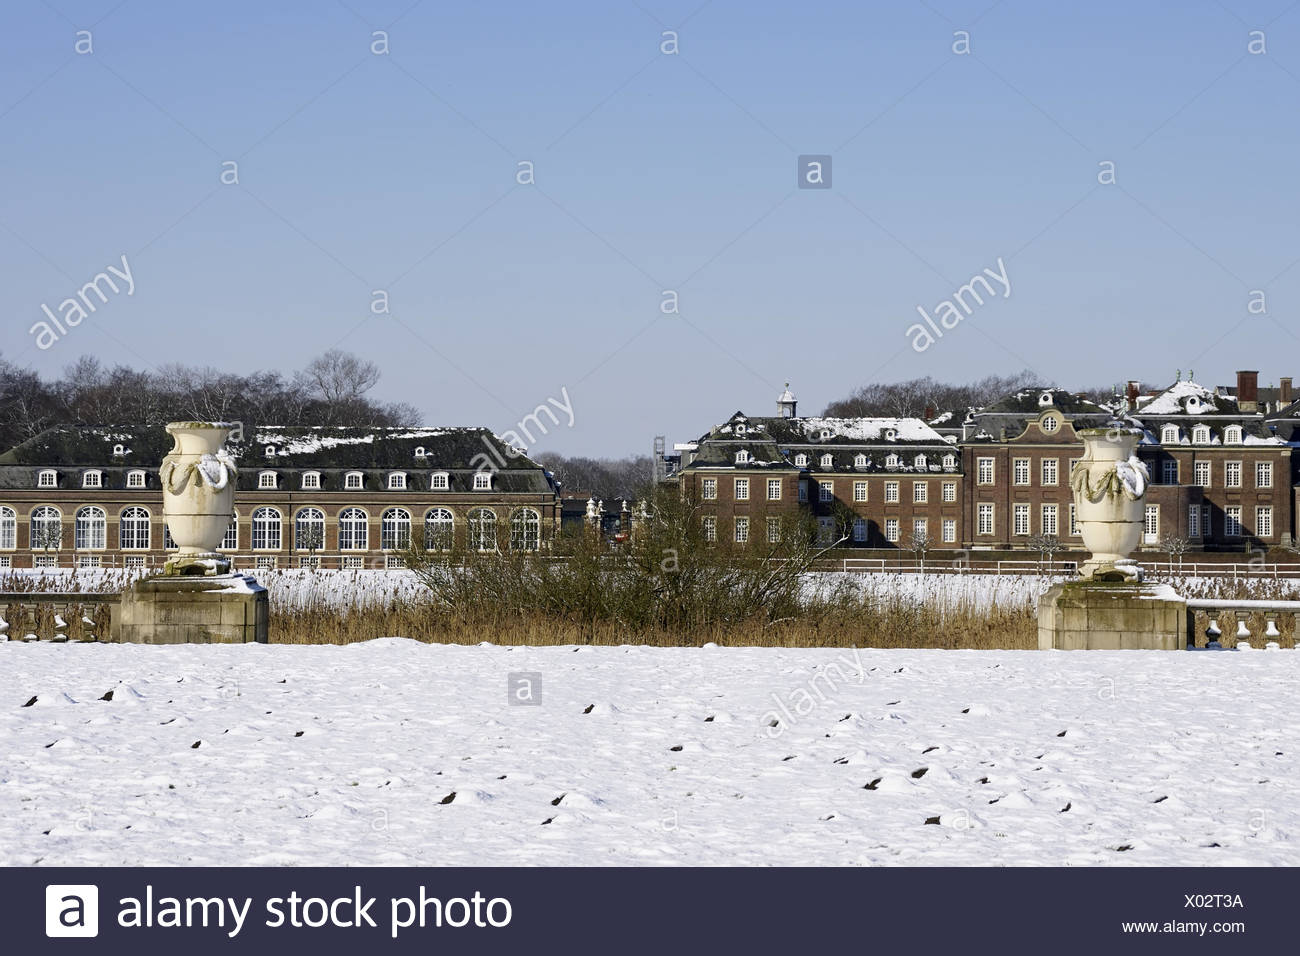 Moated castle Nordkichen  - snow-covered, Germany - Stock Image